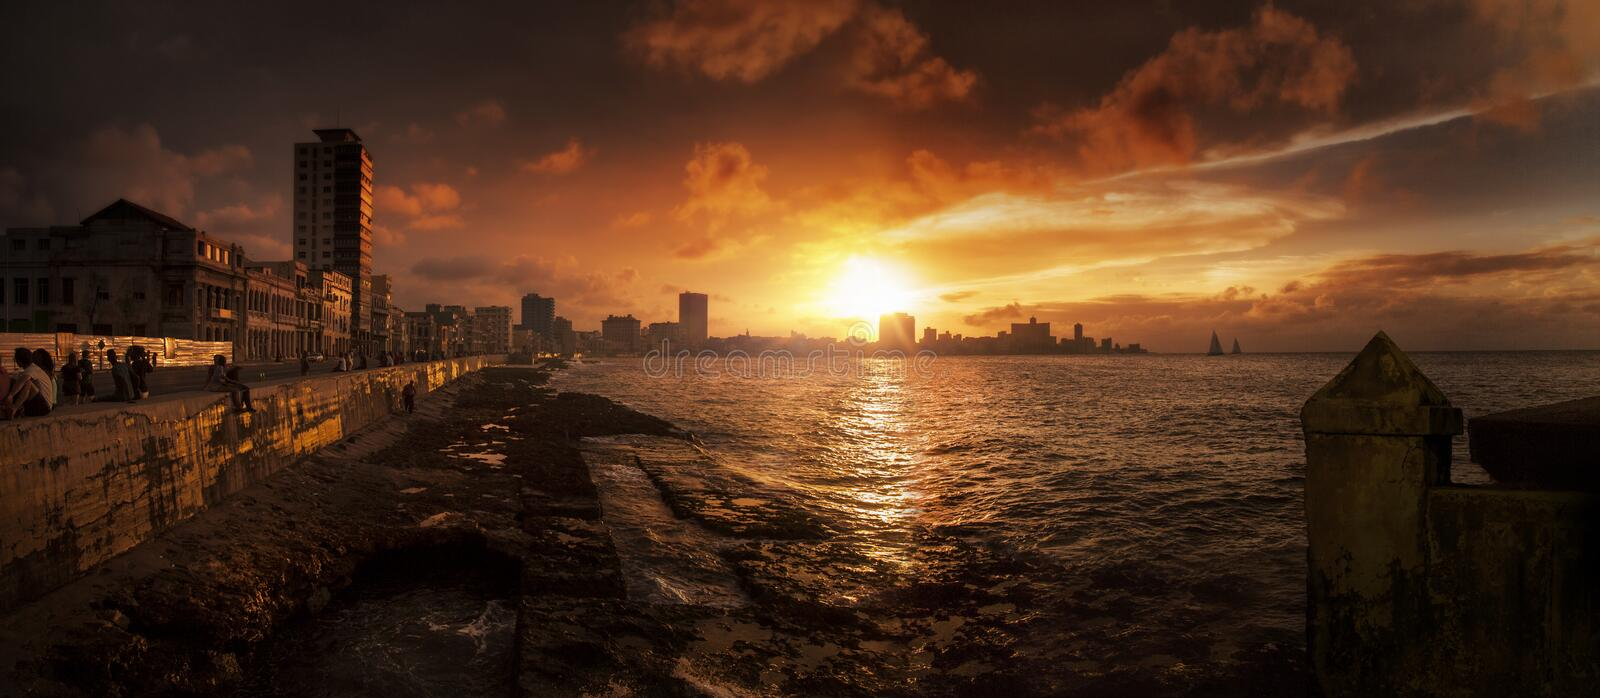 Ponoramic, por do sol, Malecon, Havana, Cuba imagens de stock royalty free